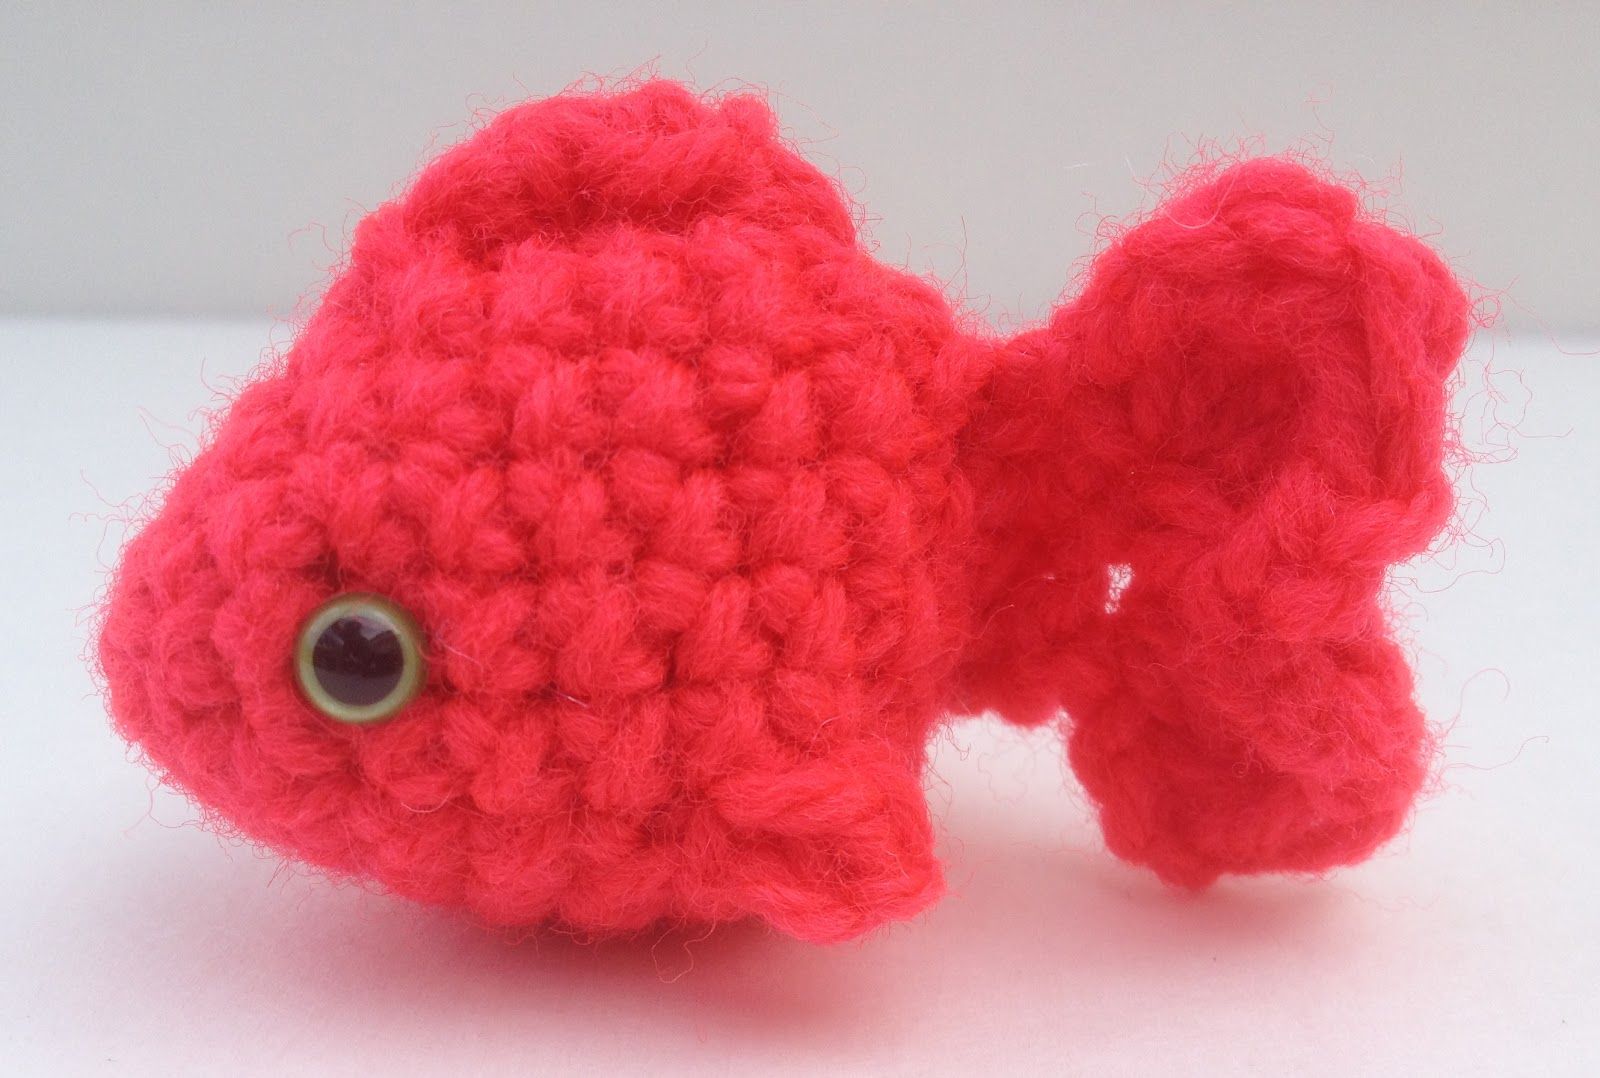 Free Crochet Pattern For Small Fish : The Itsy Bitsy Spider Crochet: Lil Fishy